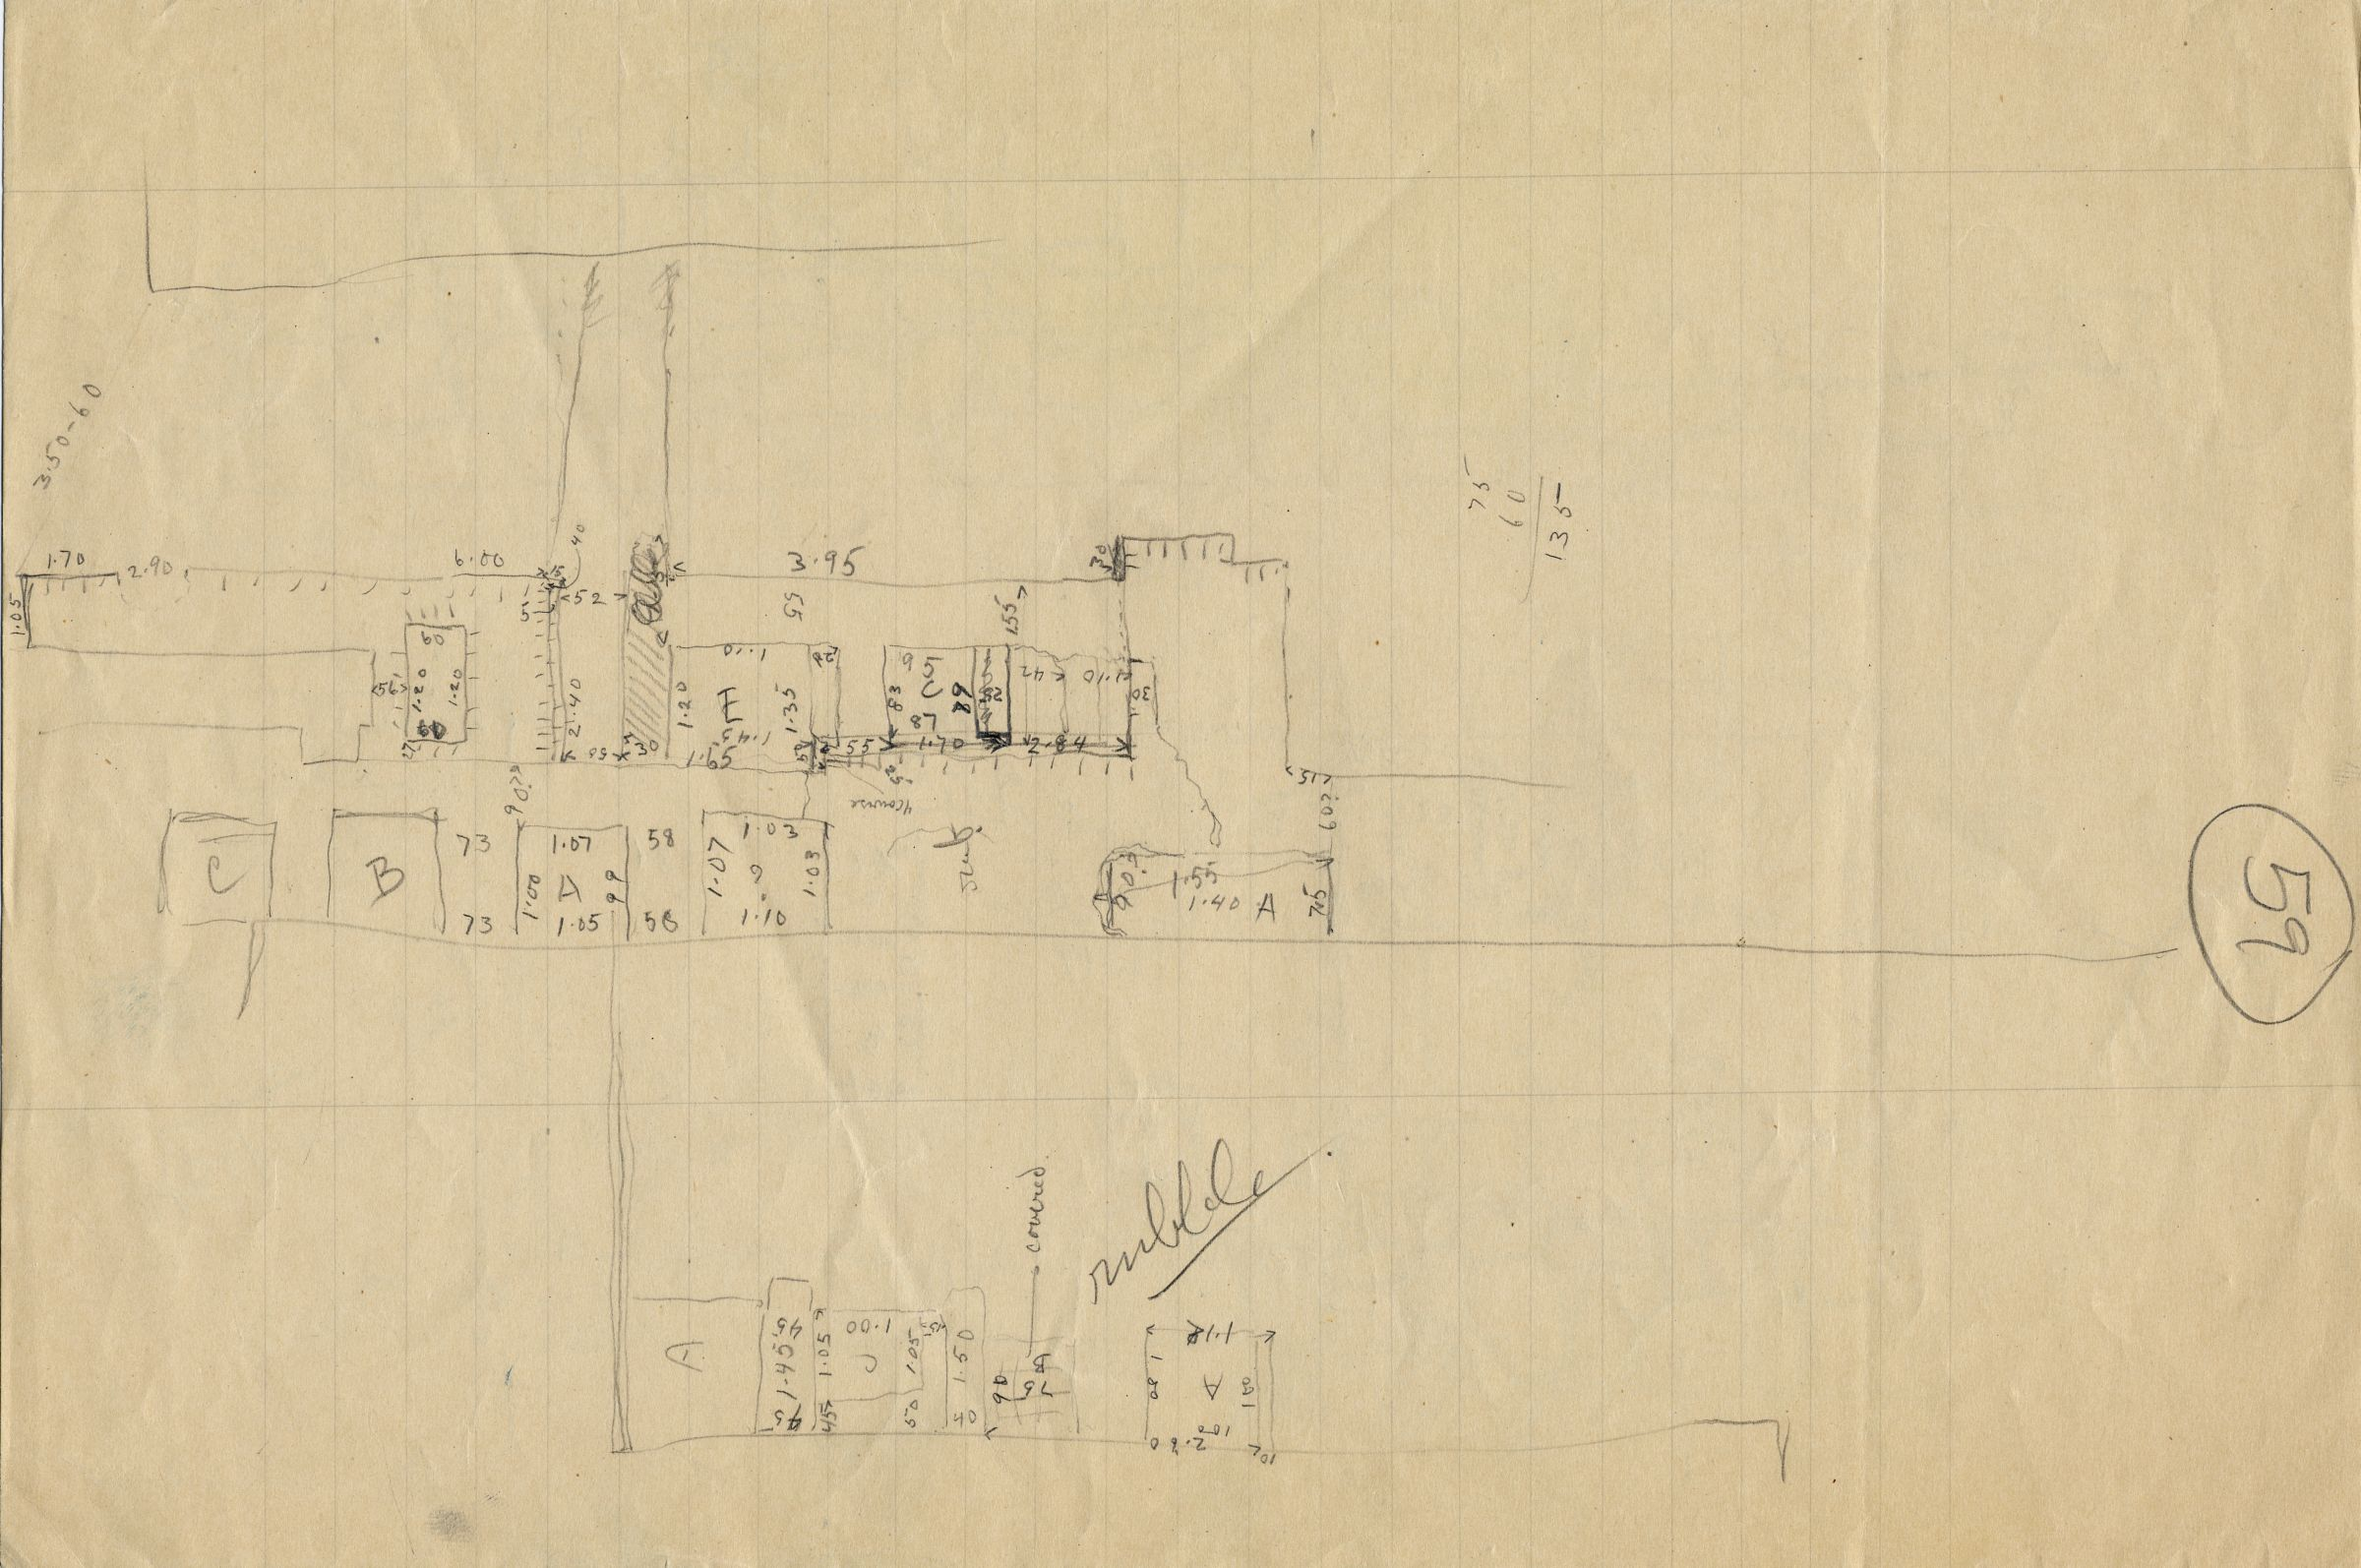 Maps and plans: Sketch plan of G 4522 and G 4523